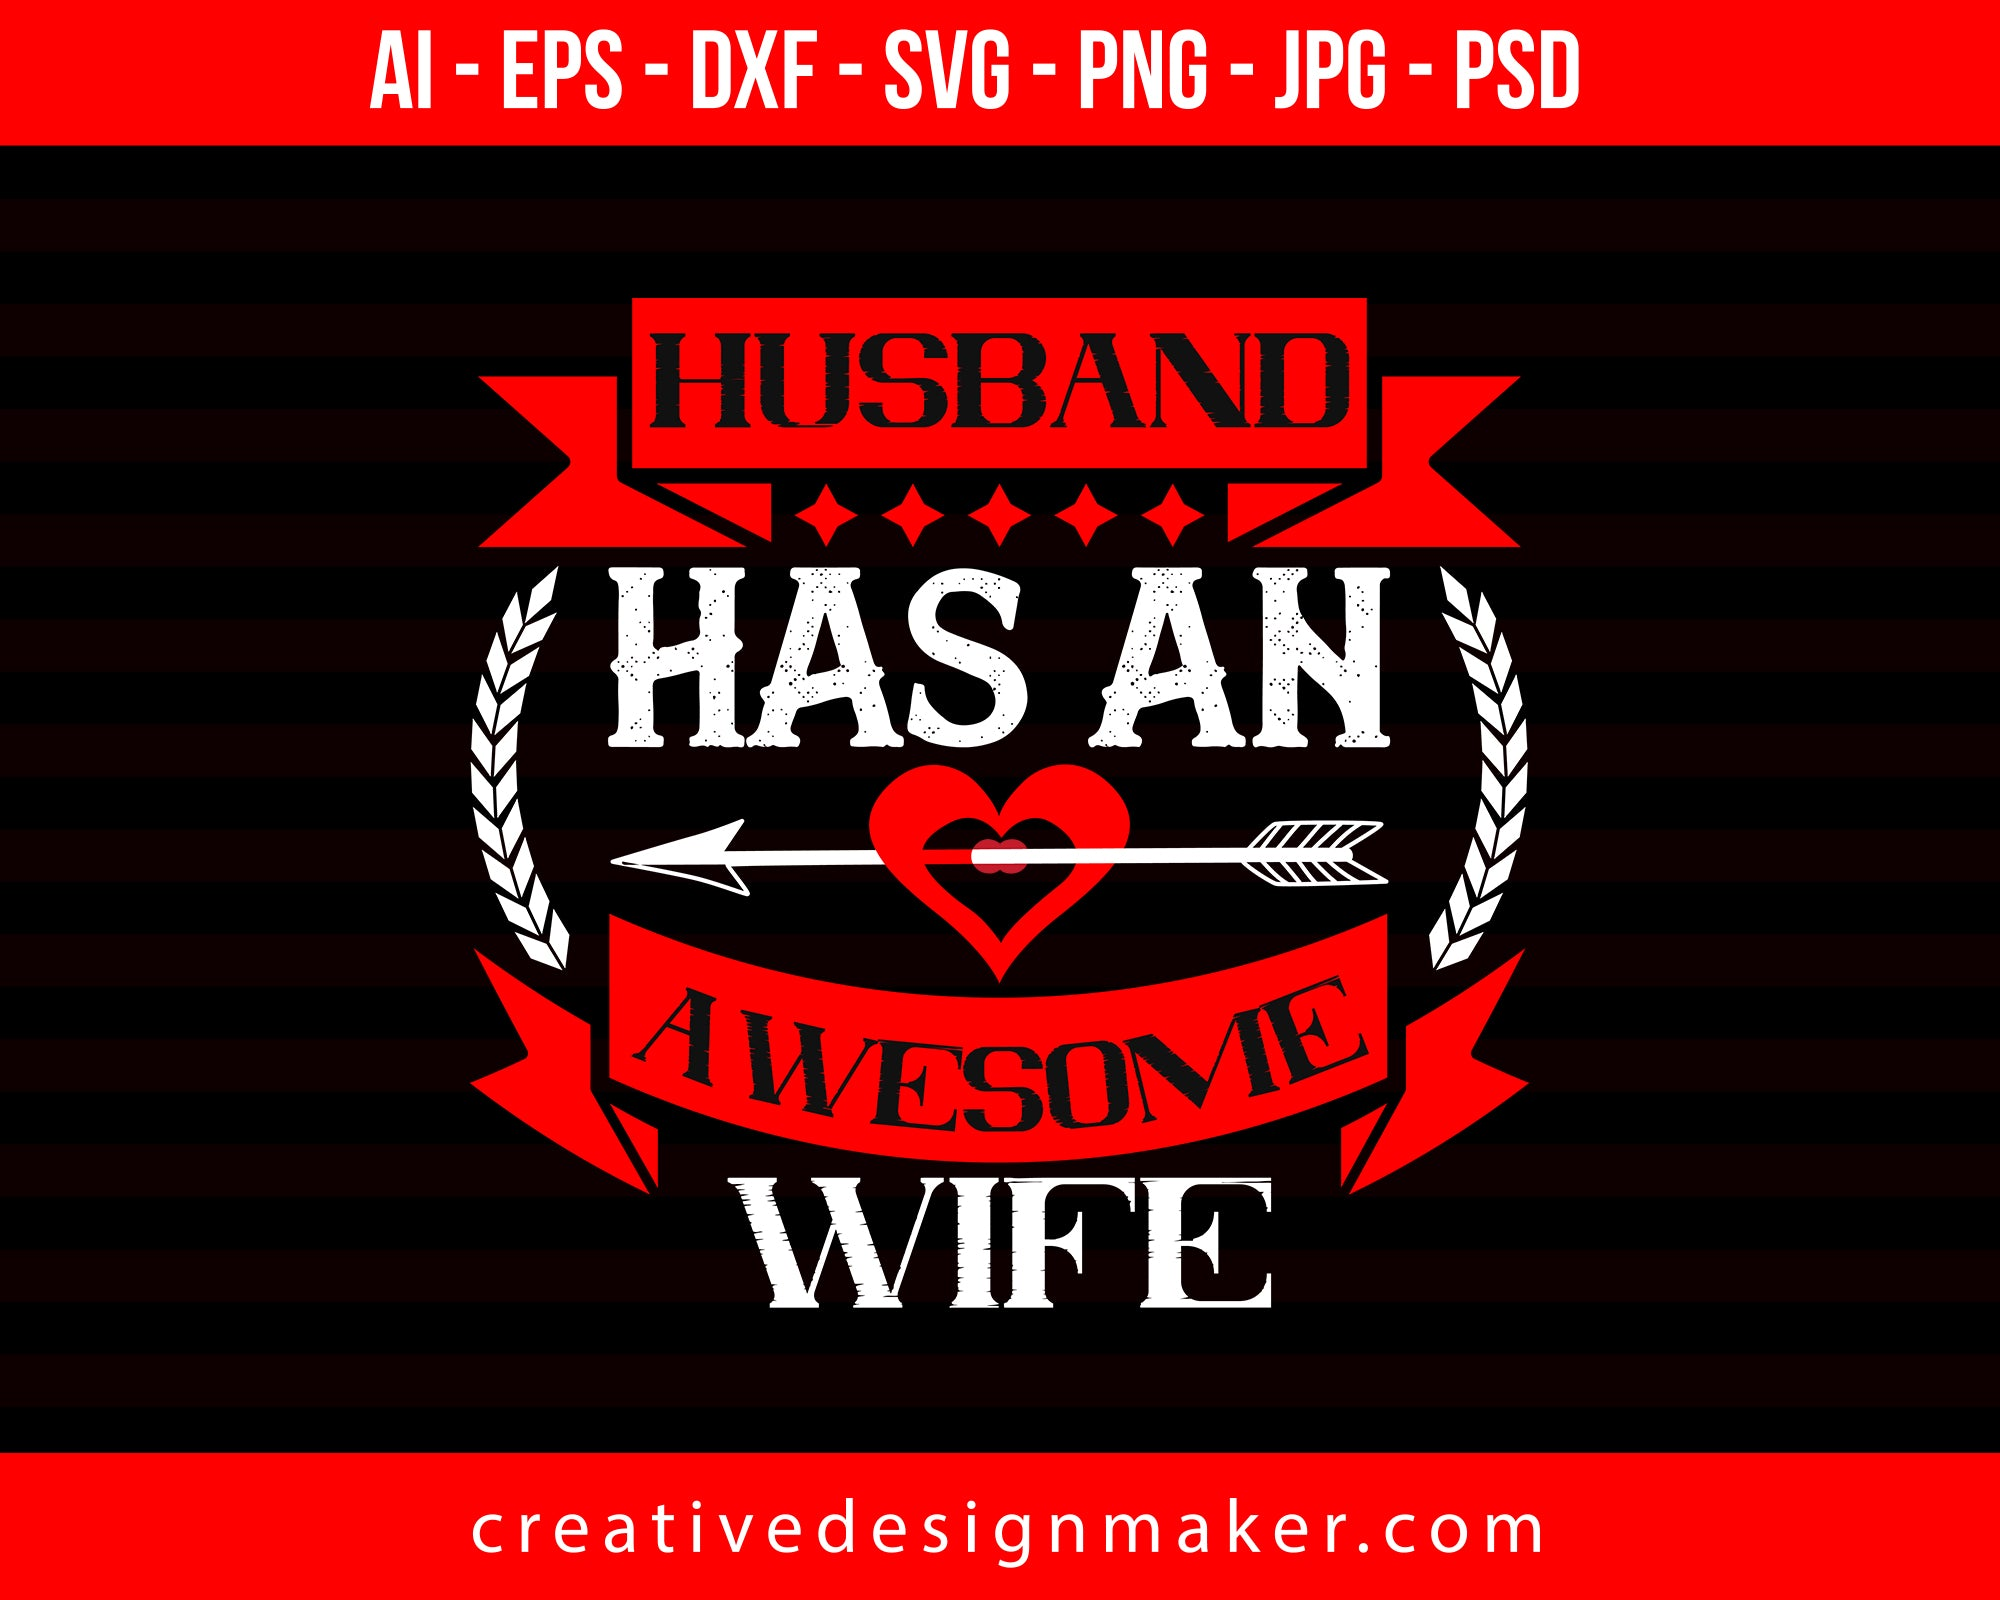 Husband Hasan Awesome Wife Couple Print Ready Editable T-Shirt SVG Design!